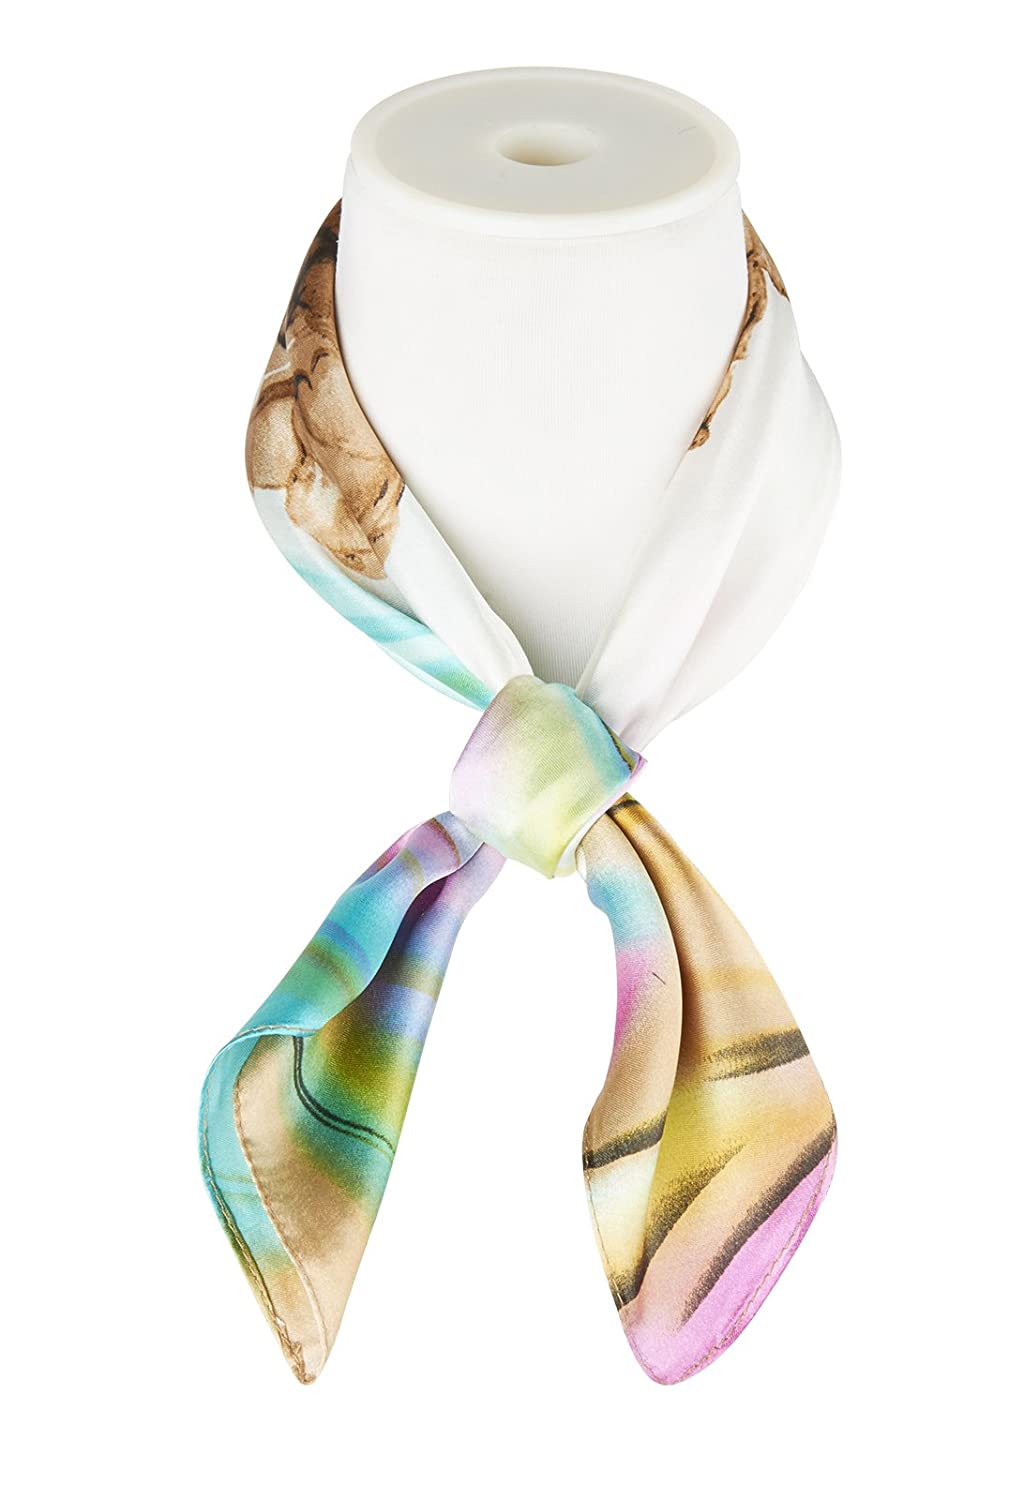 Scarf Muffler Square Satiny Flowery Patterned Smooth Breathable Girls